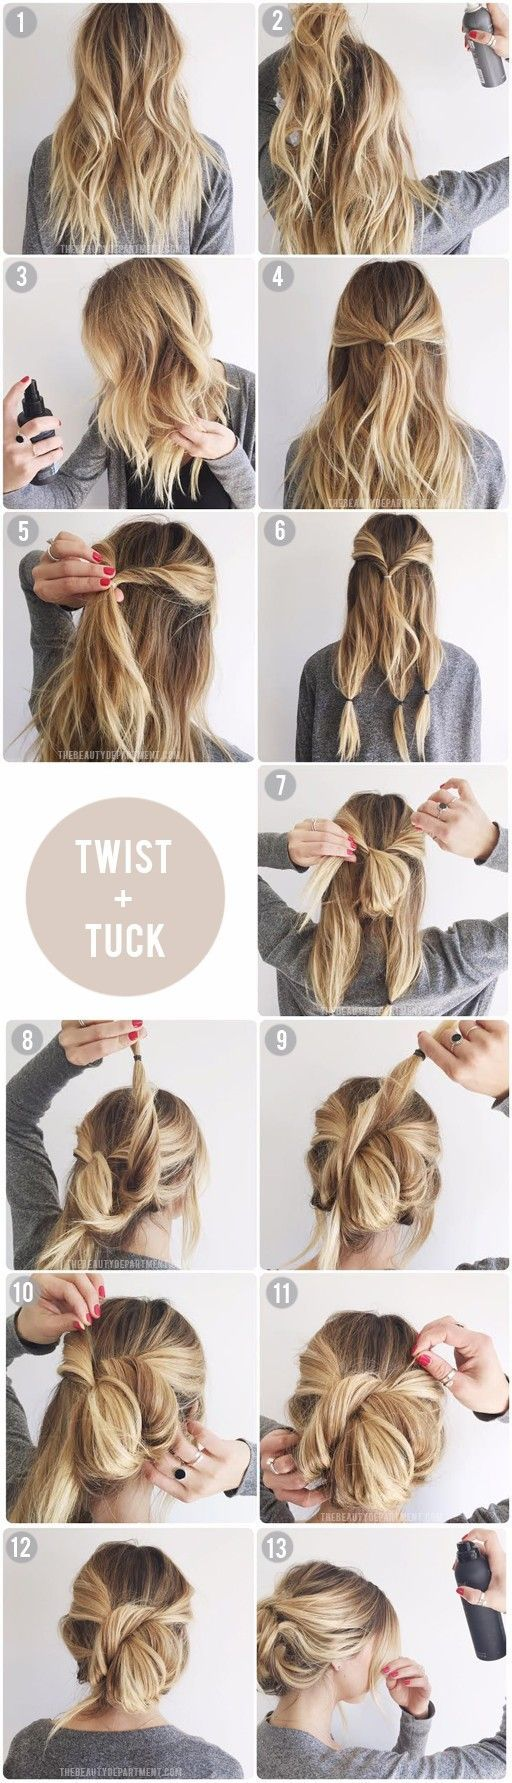 easiest updo ever. {even for those with no hair skills!}